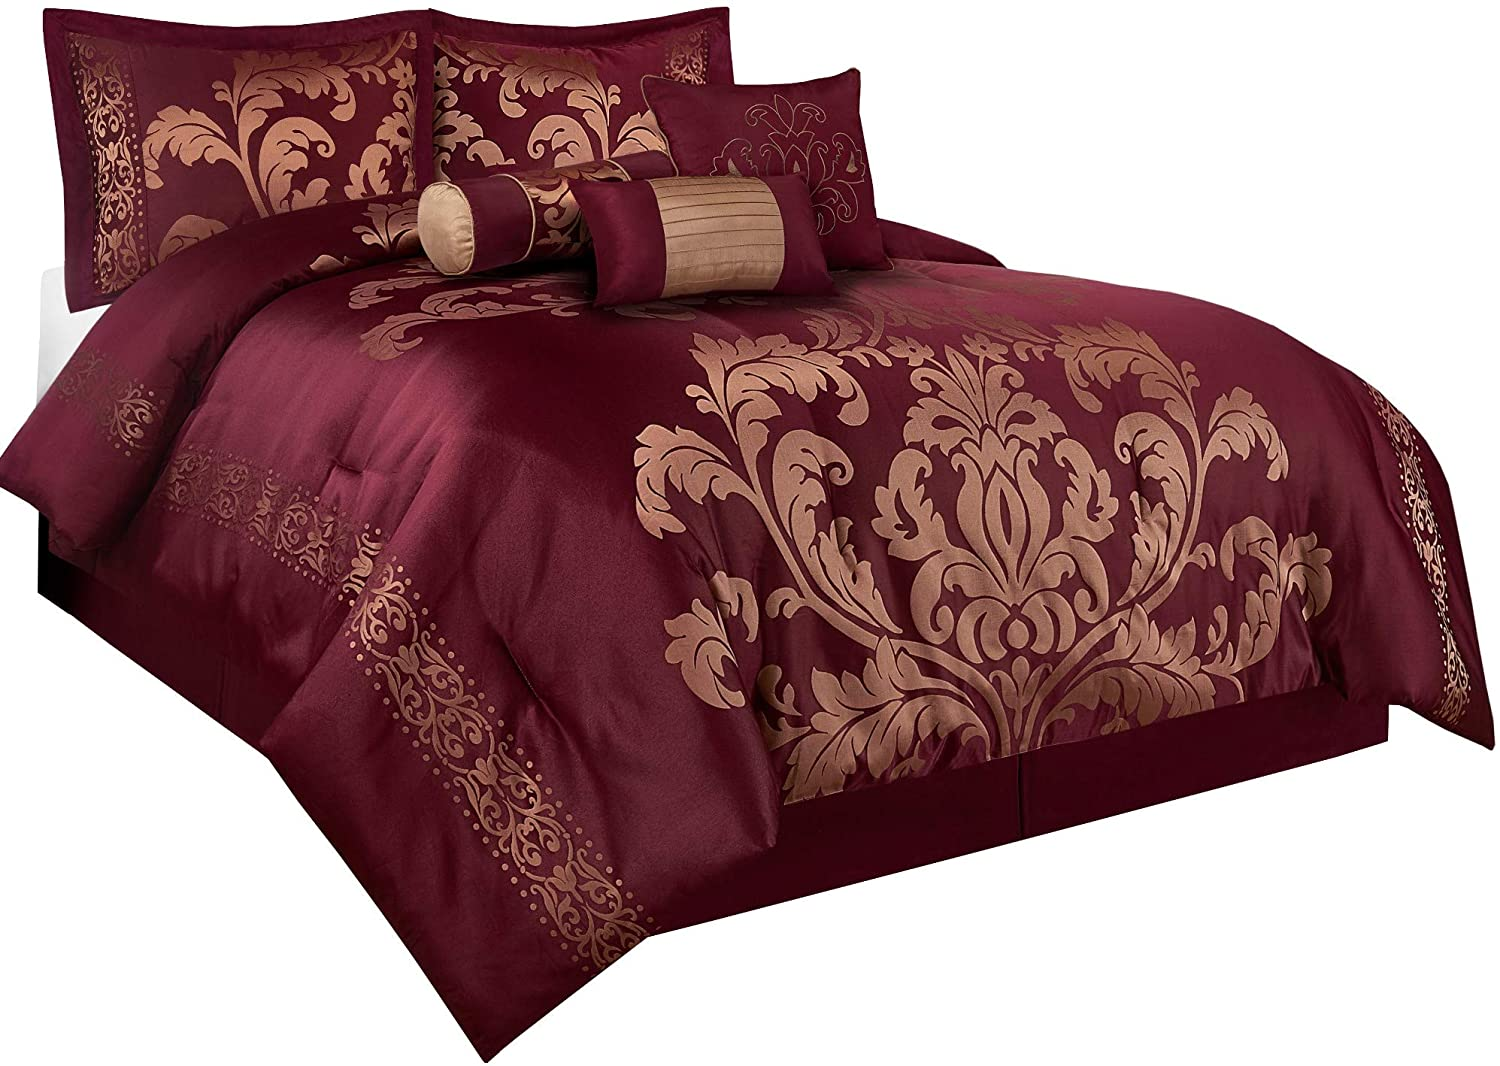 Amazon.com: Chezmoi Collection 7 Piece Jacquard Floral Comforter